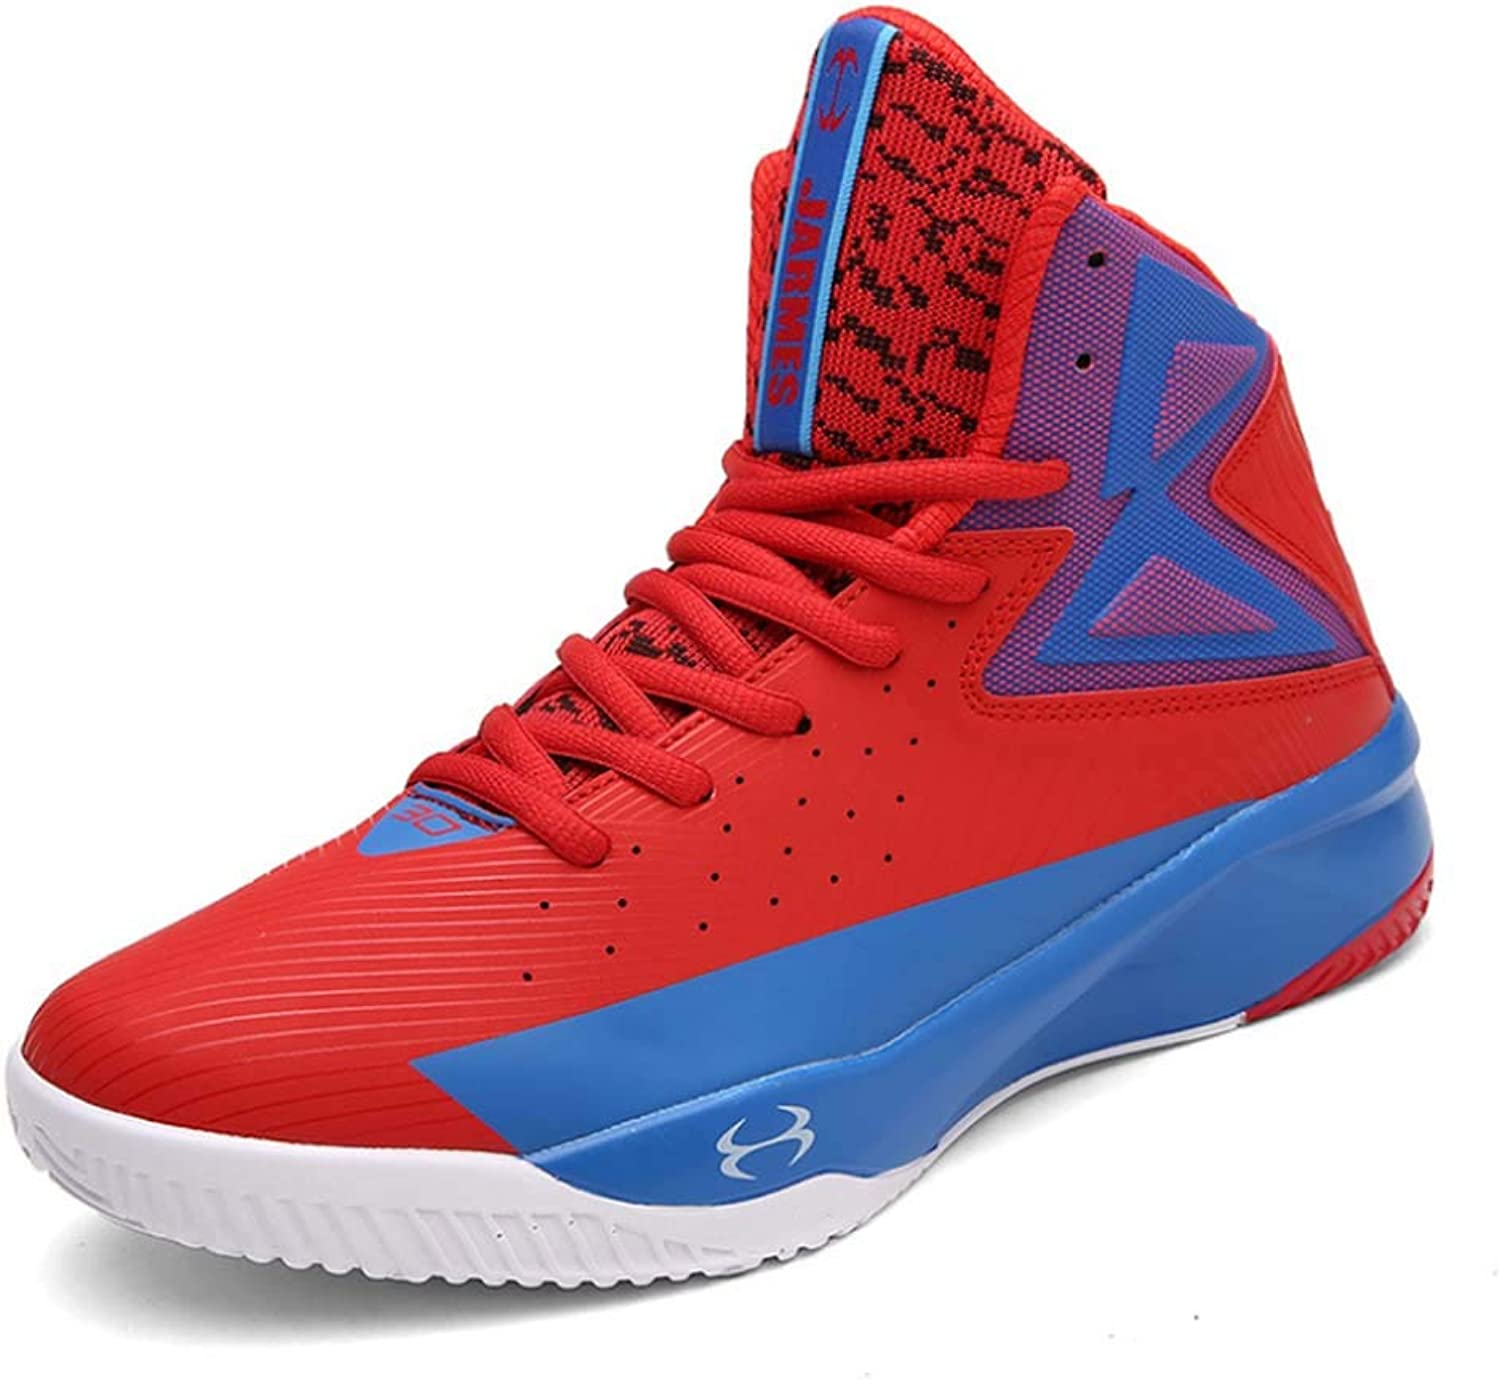 HYLFF Men Trainers Outdoor Waterproof Sneakers High Rise Basketball shoes Lightweight Casual shoes